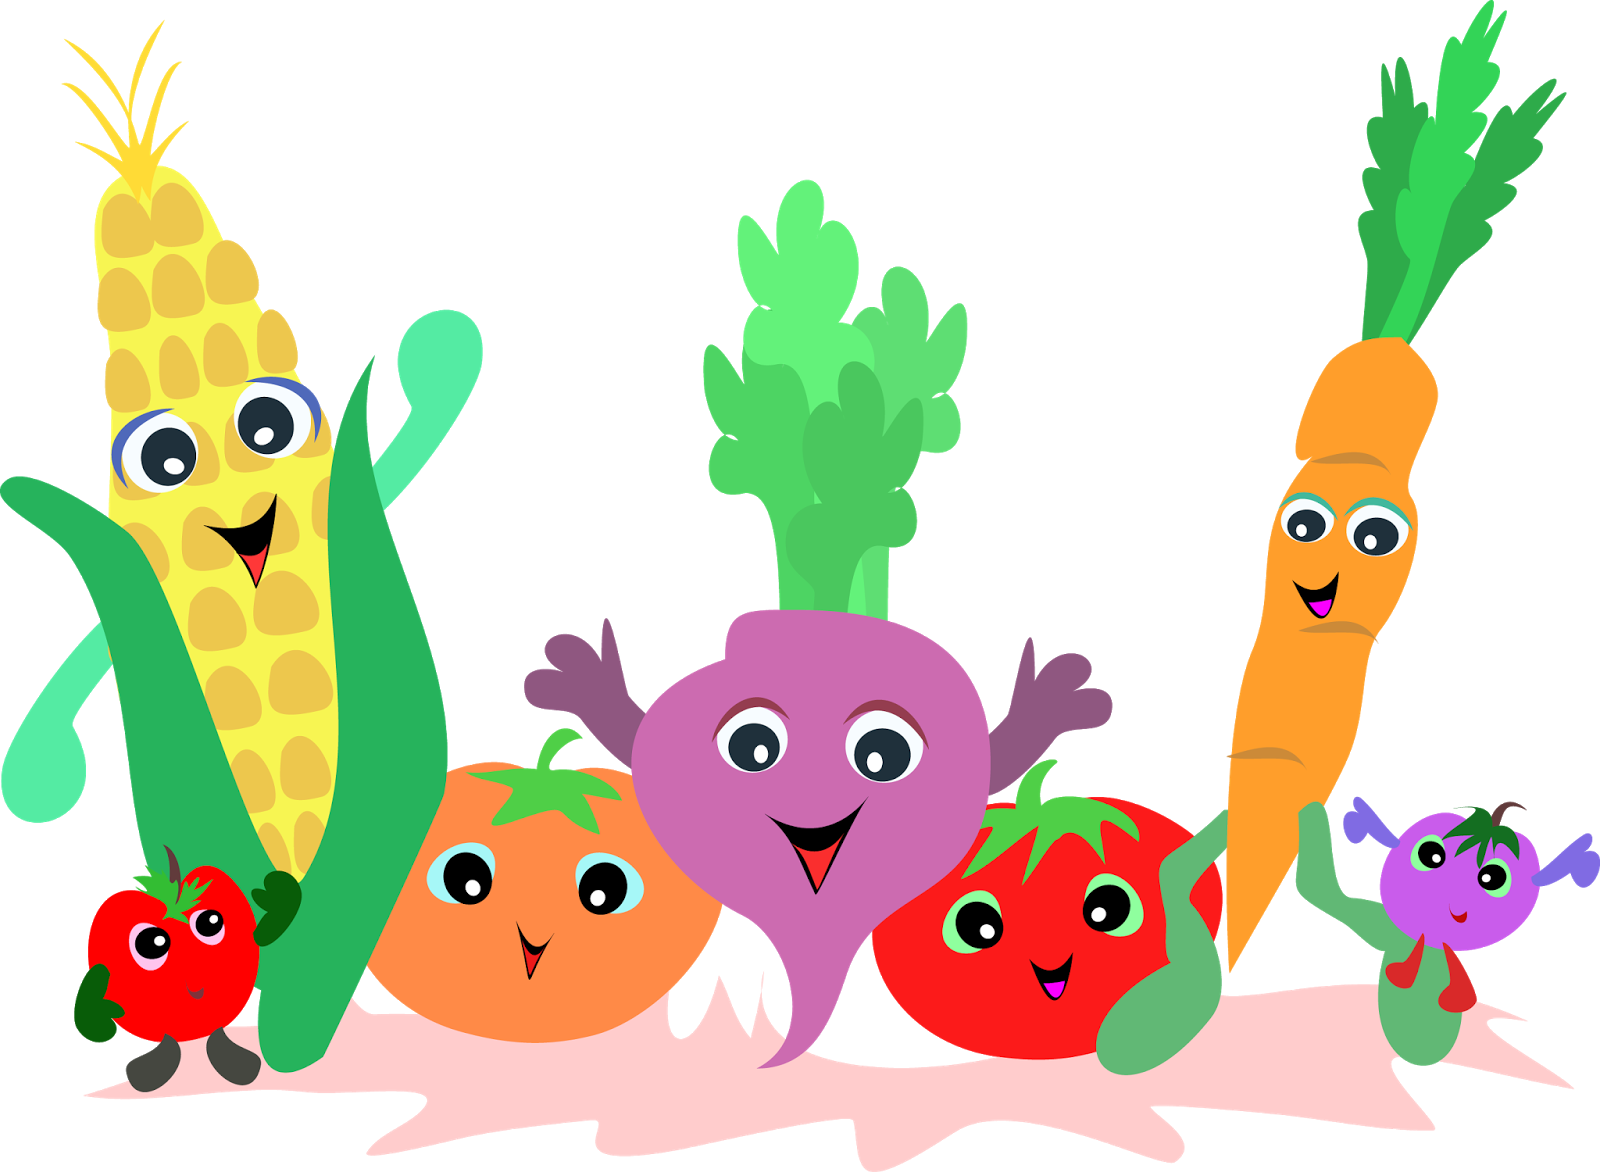 vegetables clipart at getdrawings com free for personal use rh getdrawings com vegetable garden clip art free vegetable garden clip art free